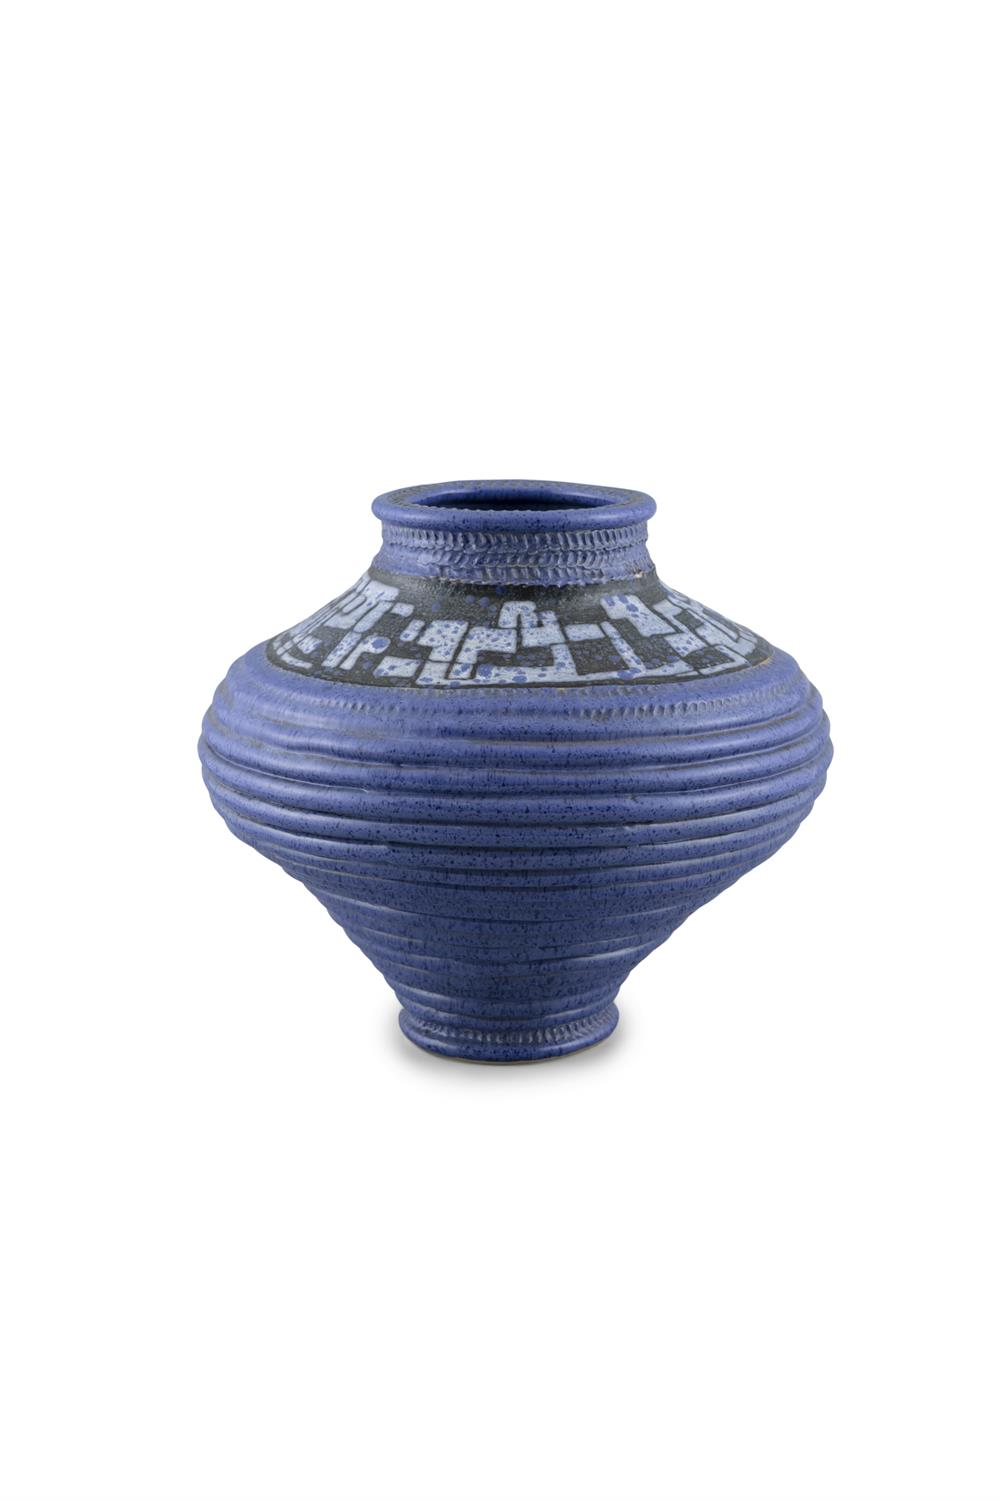 A 1970S 'TROIKA STYLE' POTTERY VASE, decorated in blue tones, signed 'P. Jones' to base. 26cm high